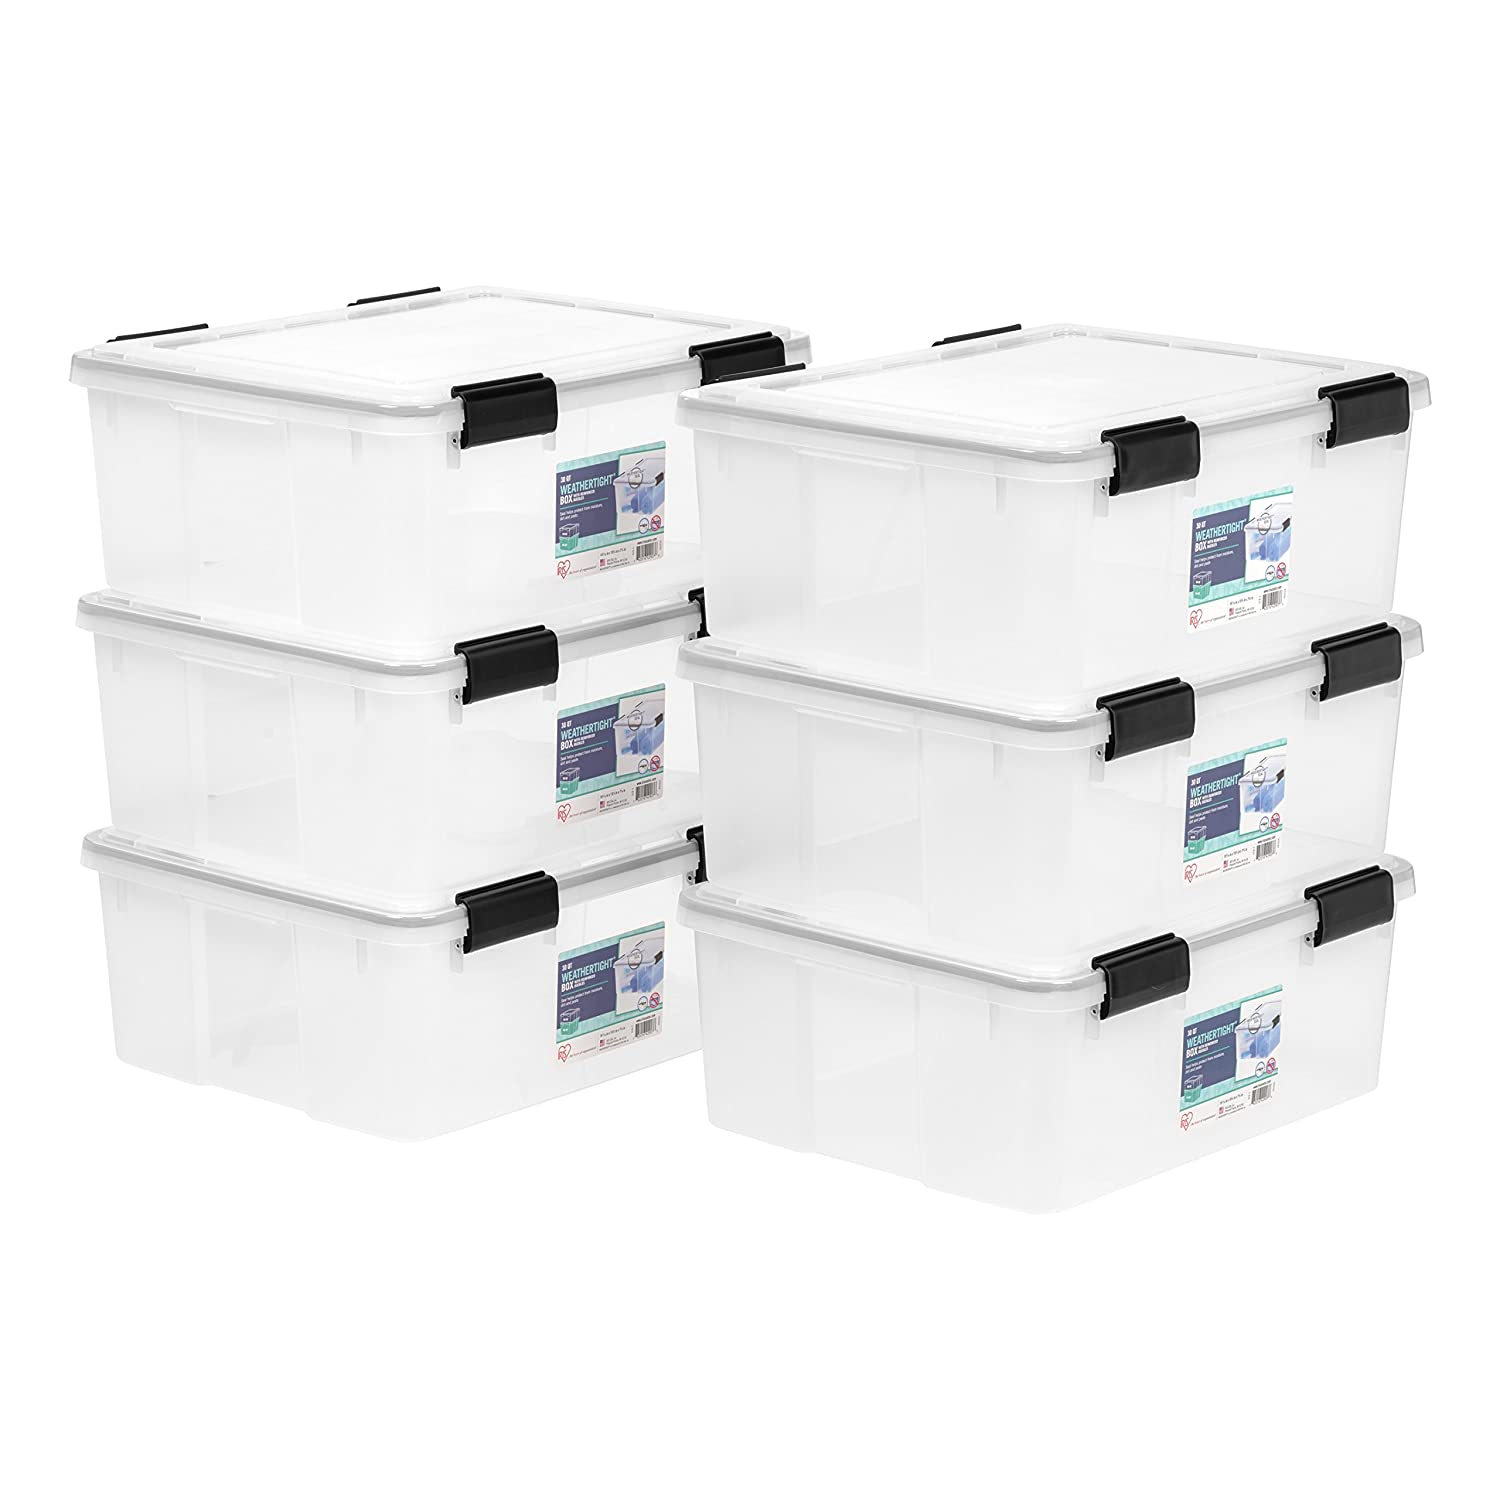 IRIS 19 Quart Weathertight Storage Box, 6 Pack, Clear IRIS USA Inc. 585420